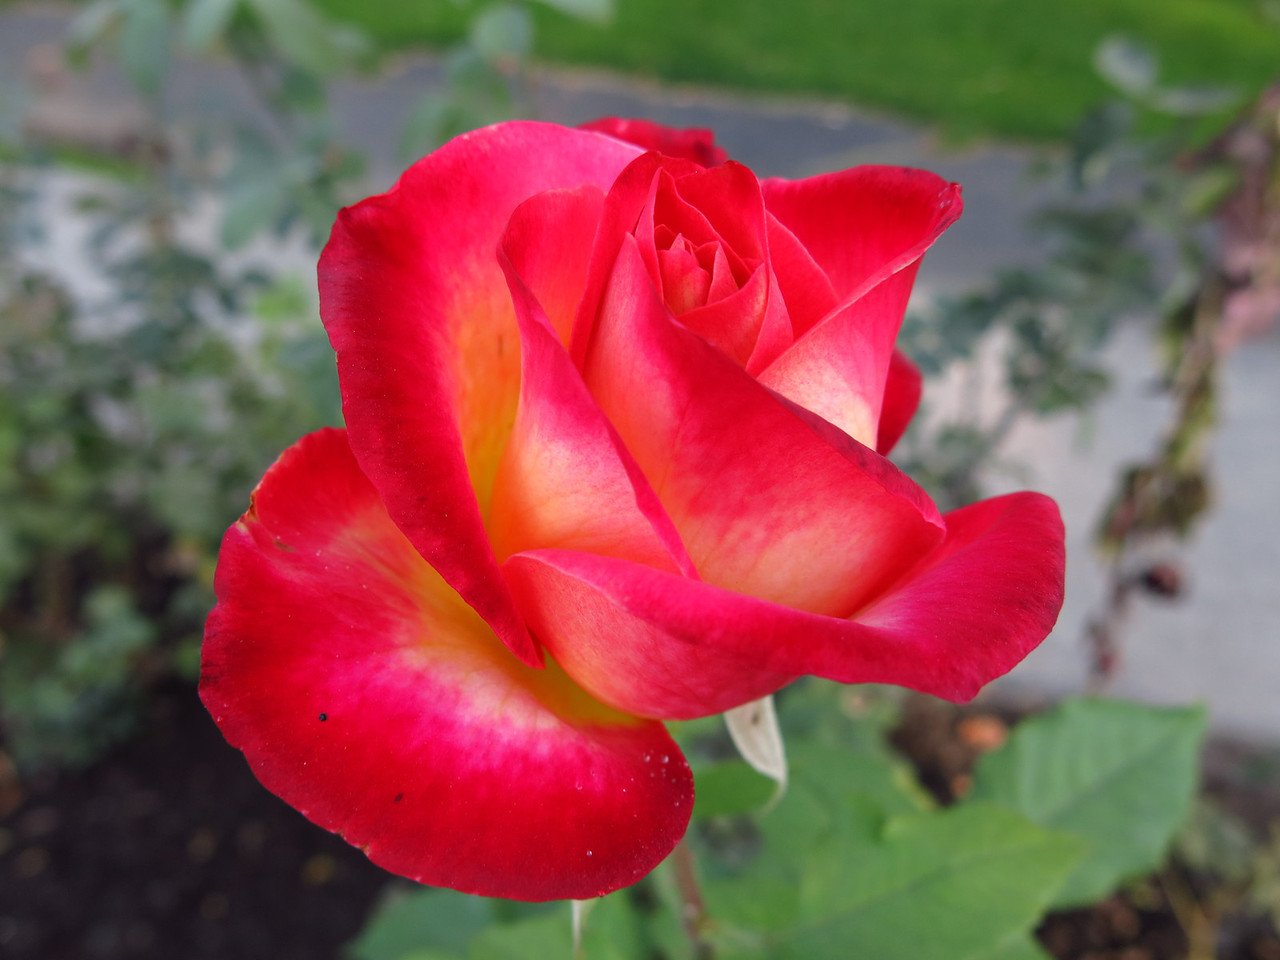 A lovely rose.